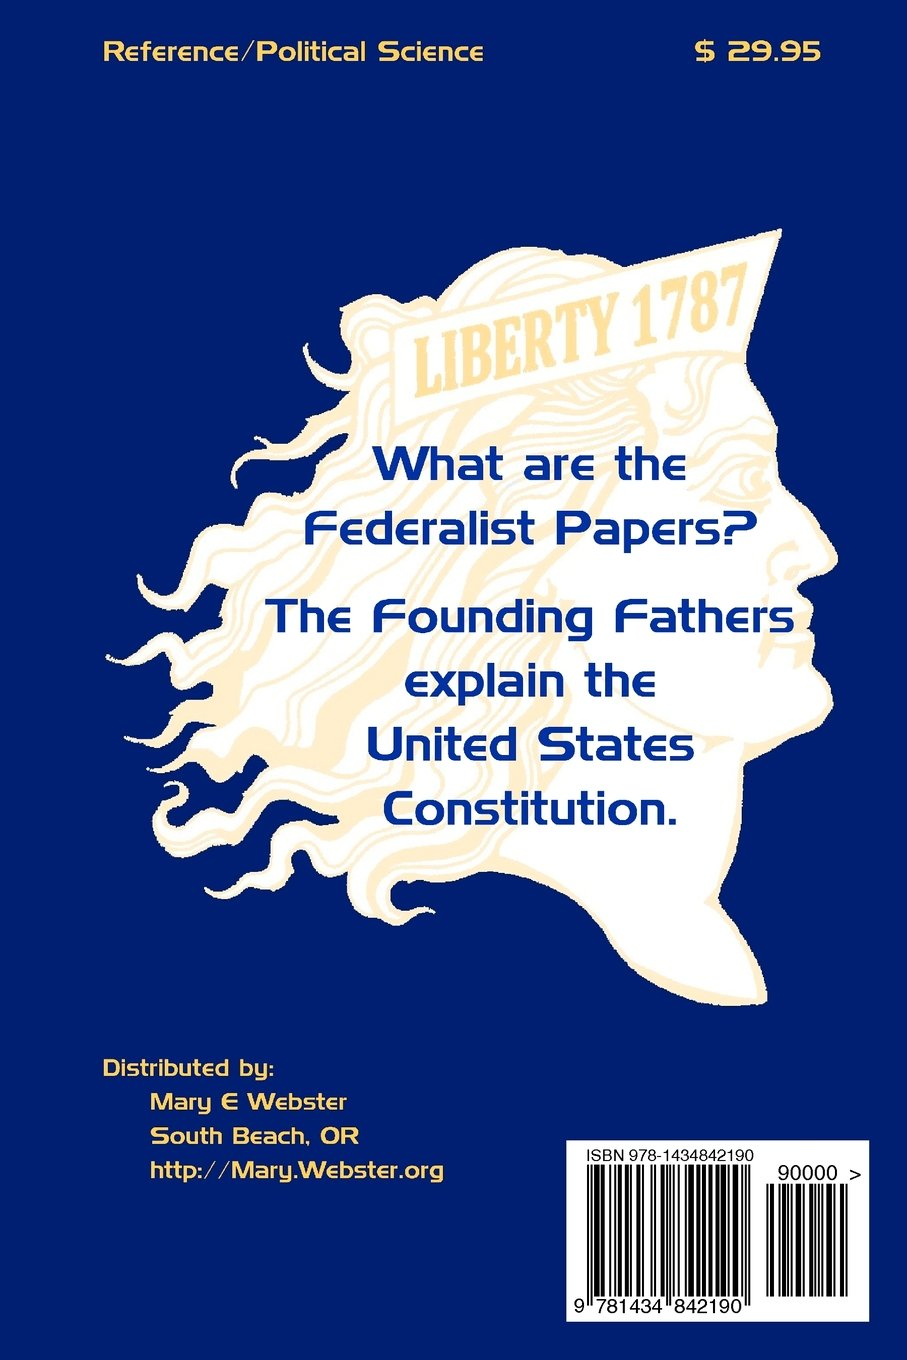 the federalist papers modern english edition two mary e webster the federalist papers modern english edition two mary e webster 9781434842190 com books